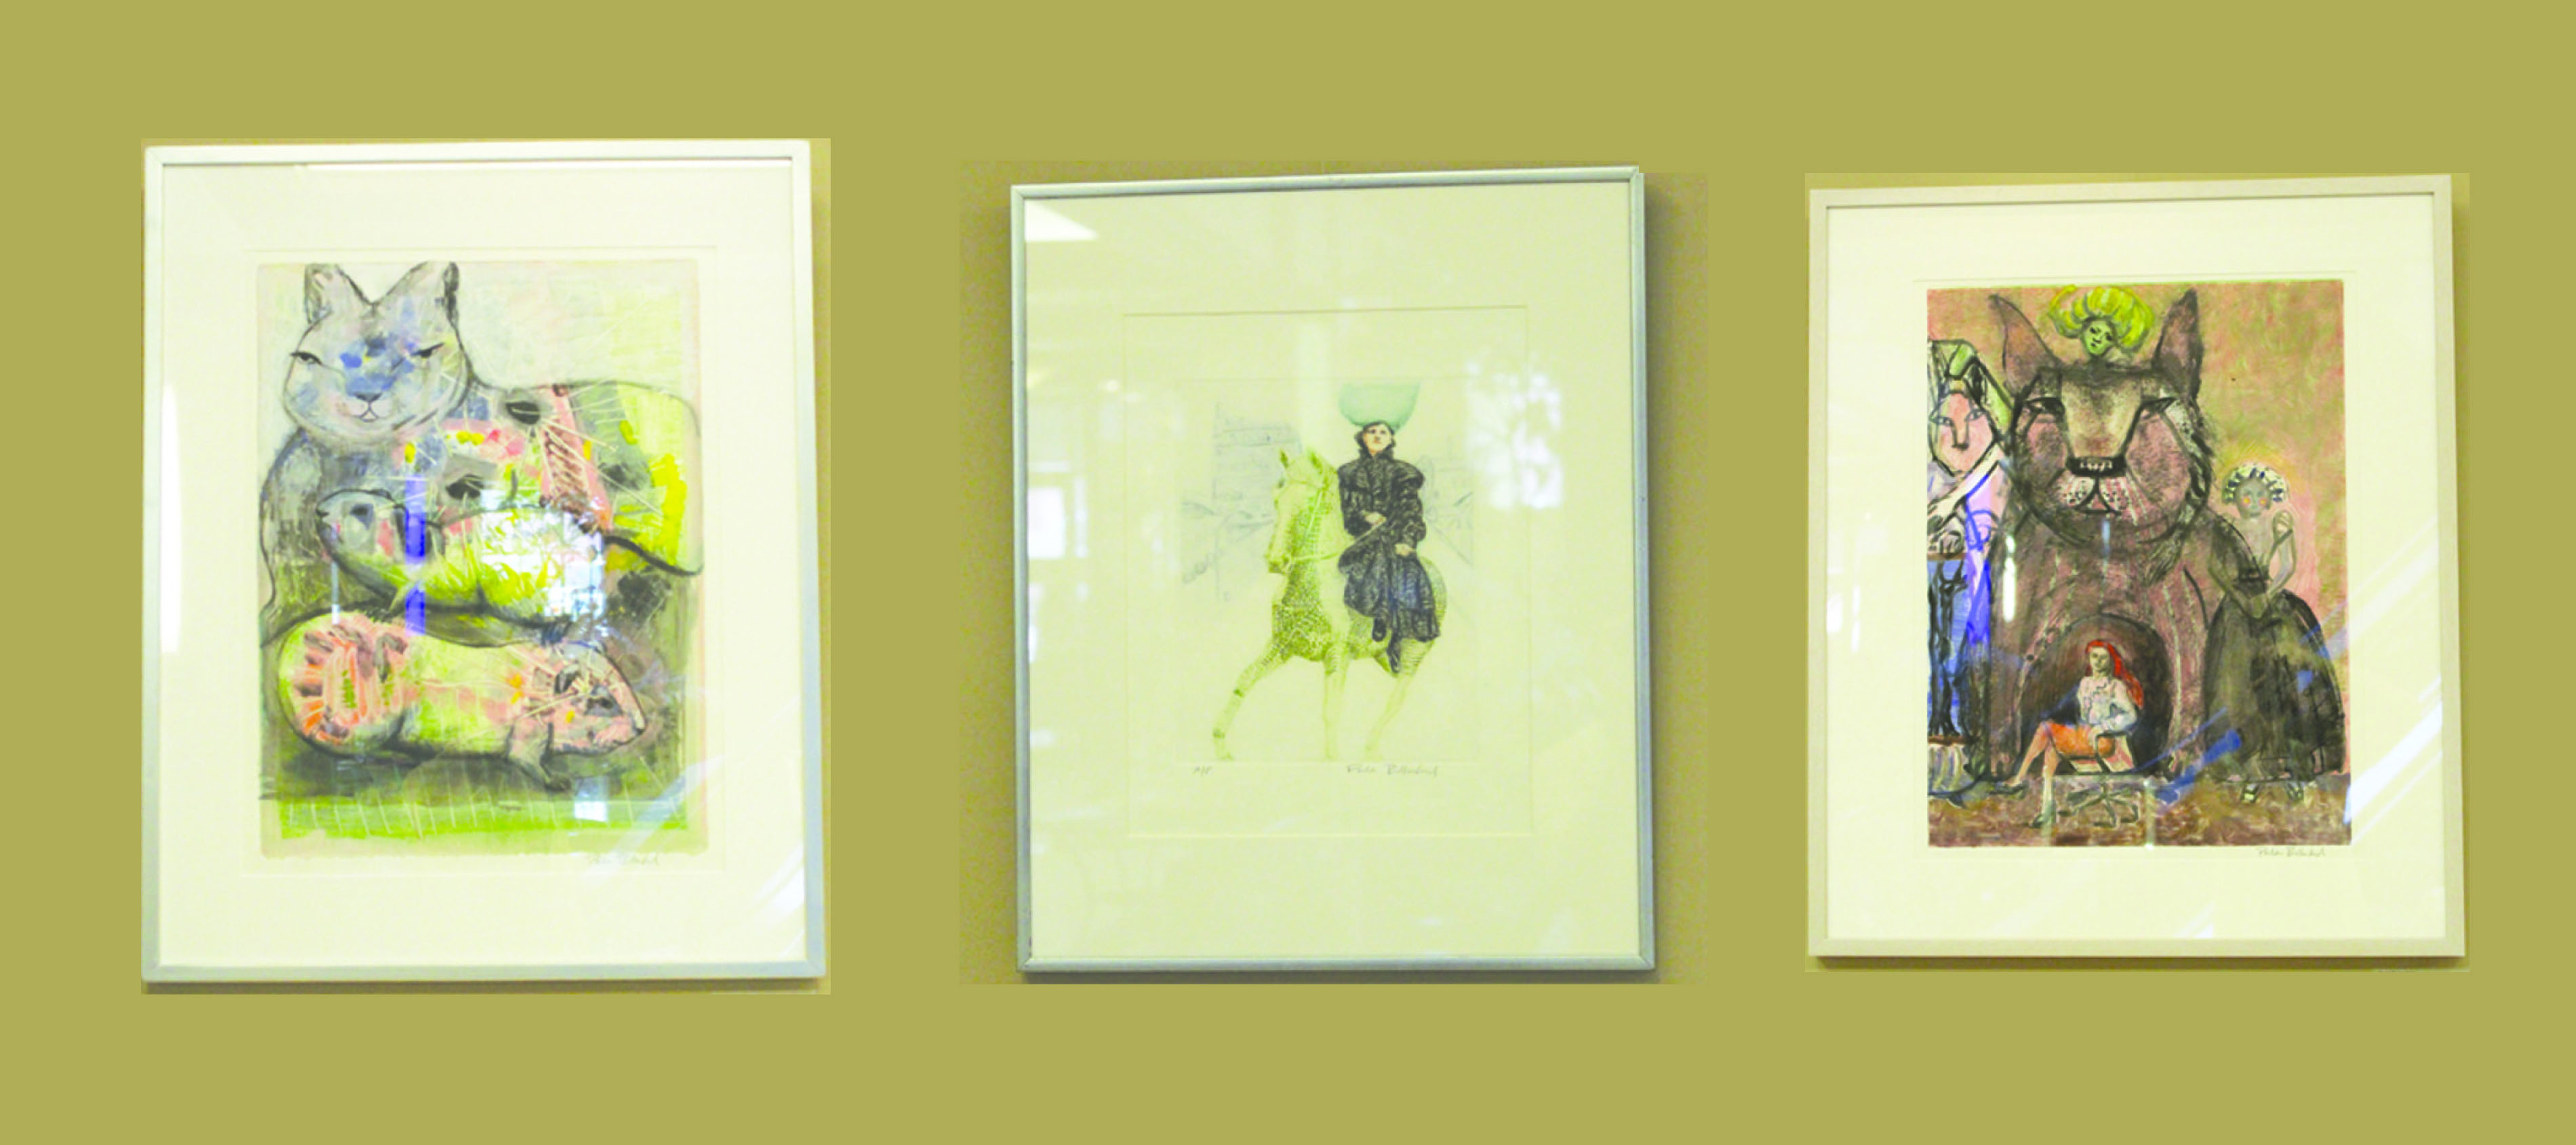 Artwork by Paula Bullwinkel displayed in the Franklin Crossing Atrium. Right: Family, Monotype with mixed-media. Center: Annie Rides, Etching. Left: Cat Cave, Monotype with mixed-media.